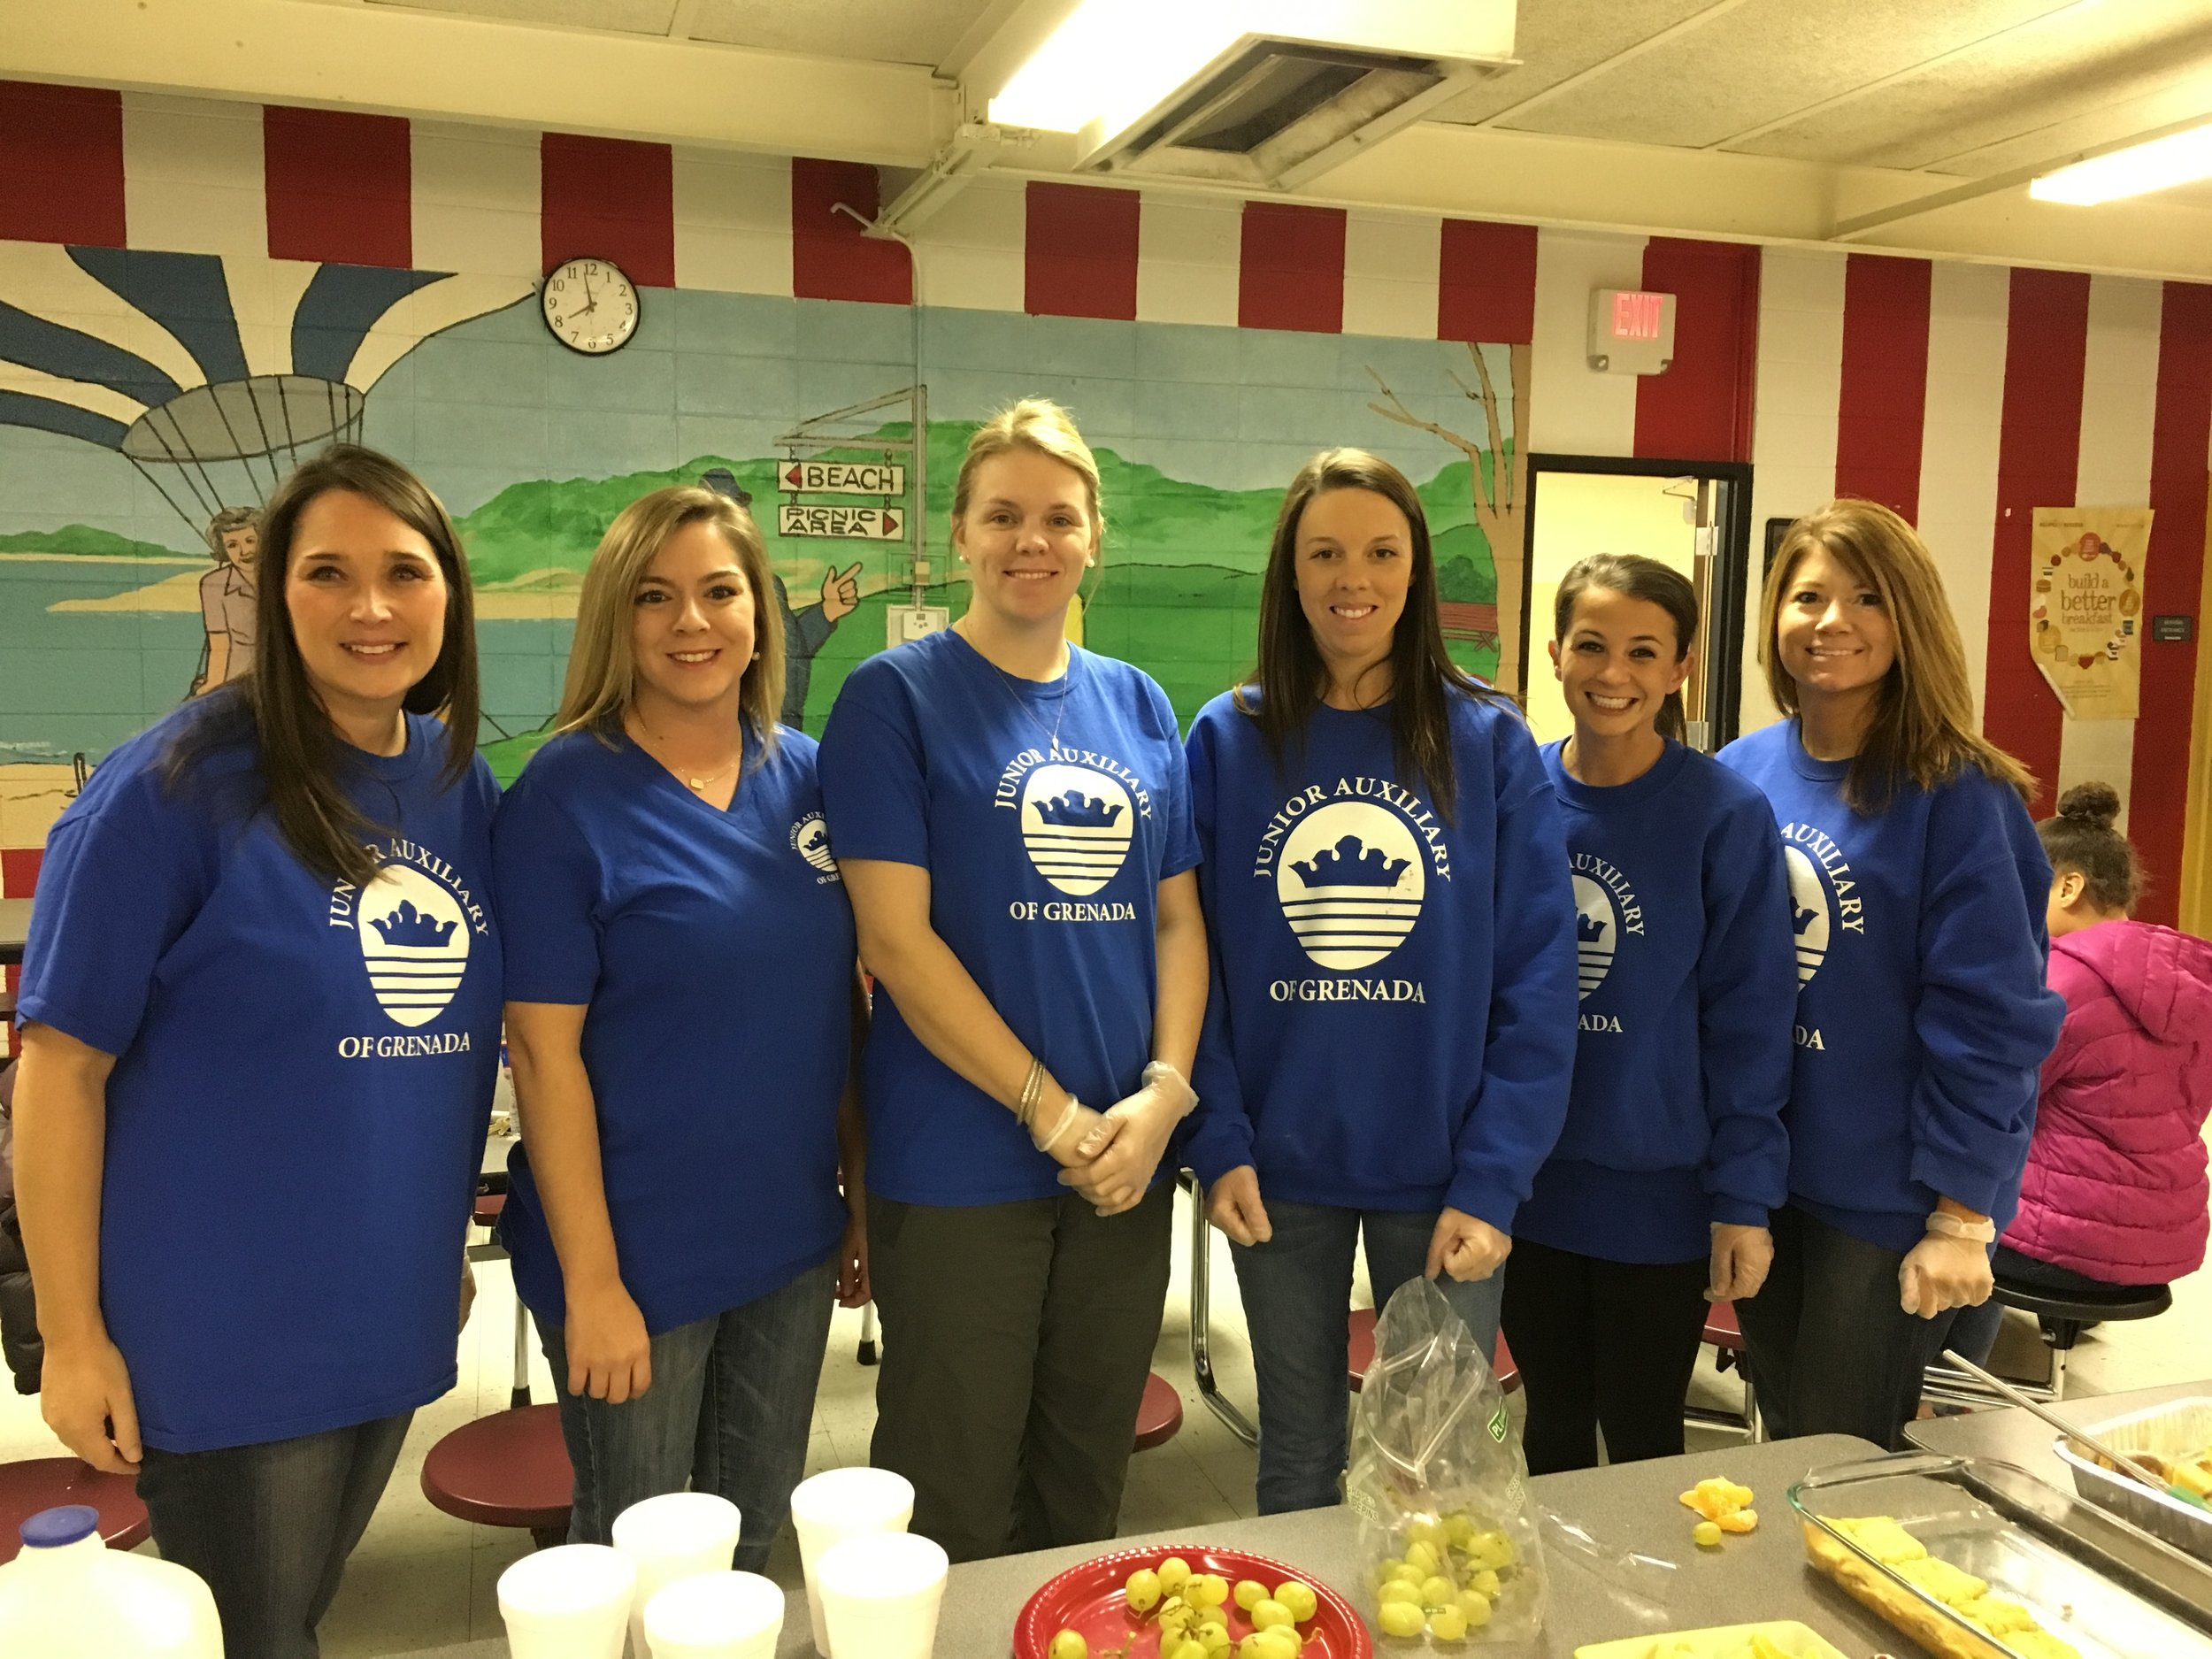 Lovin' Lunch Boxes Committee serving a thanksgiving meal to the Lovin' Lunch Boxes familes